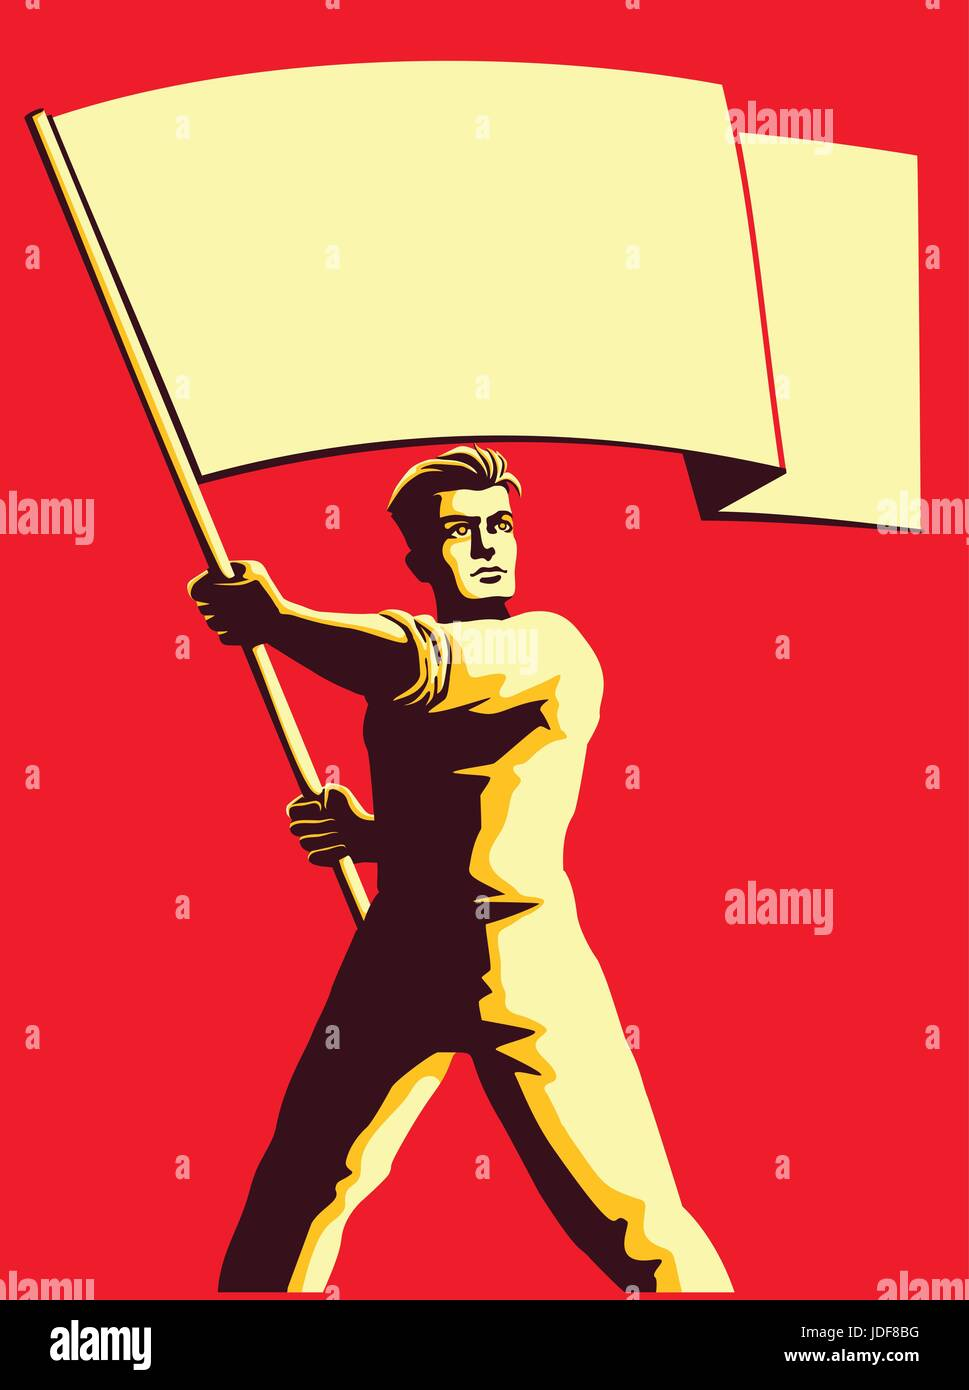 Vintage soviet socialist propaganda style patriot man holding blank flag vector illustration, political protest - Stock Image